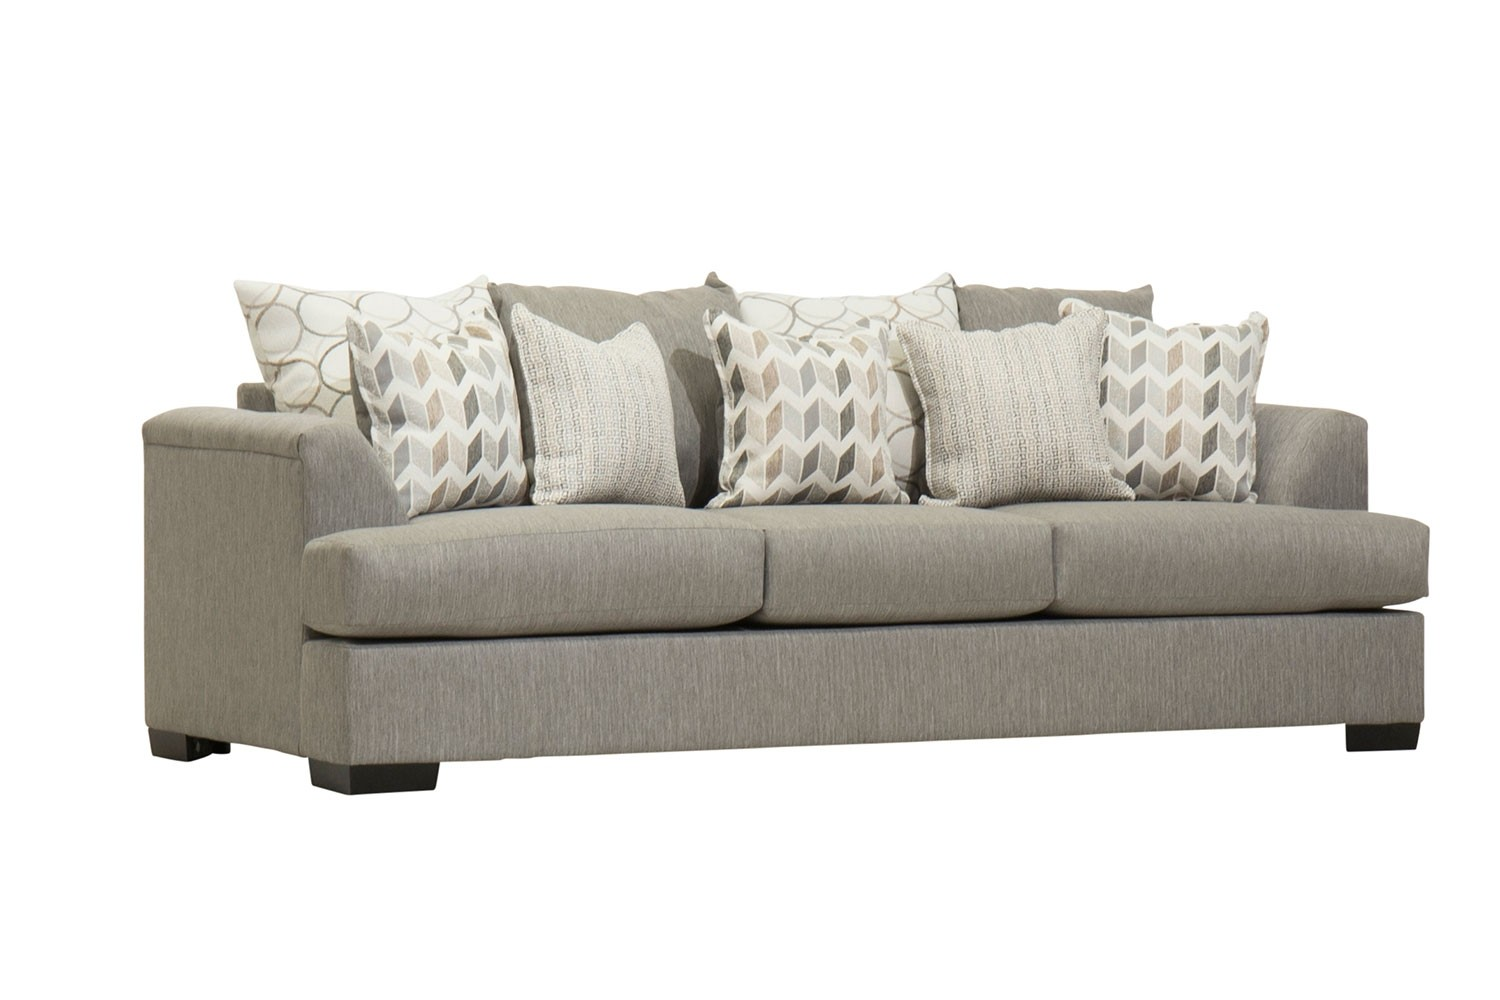 Pport Sofa In Stone Media Image 1